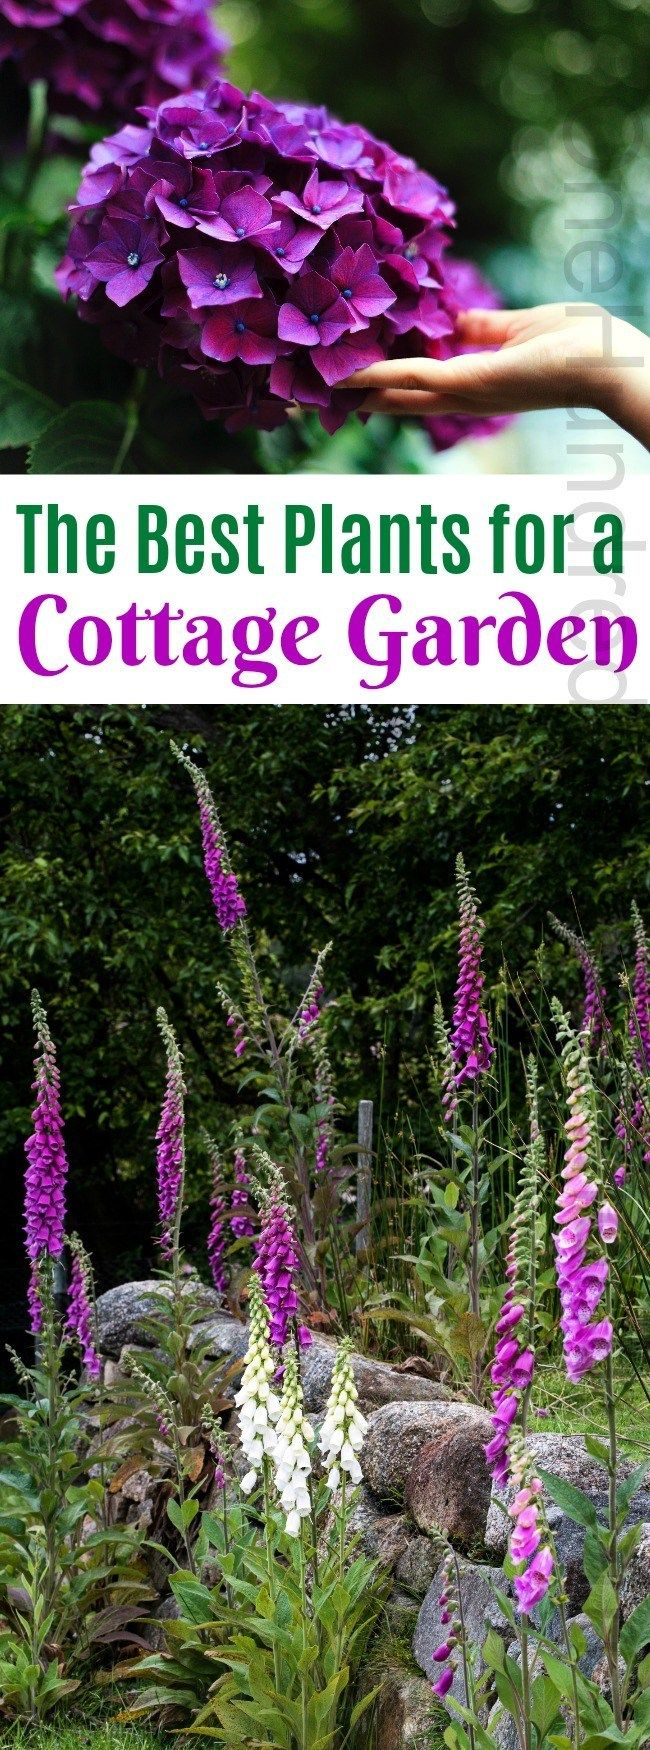 The Best Plants for a Cottage Garden - One Hundred Dollars a Month #cottagegardens